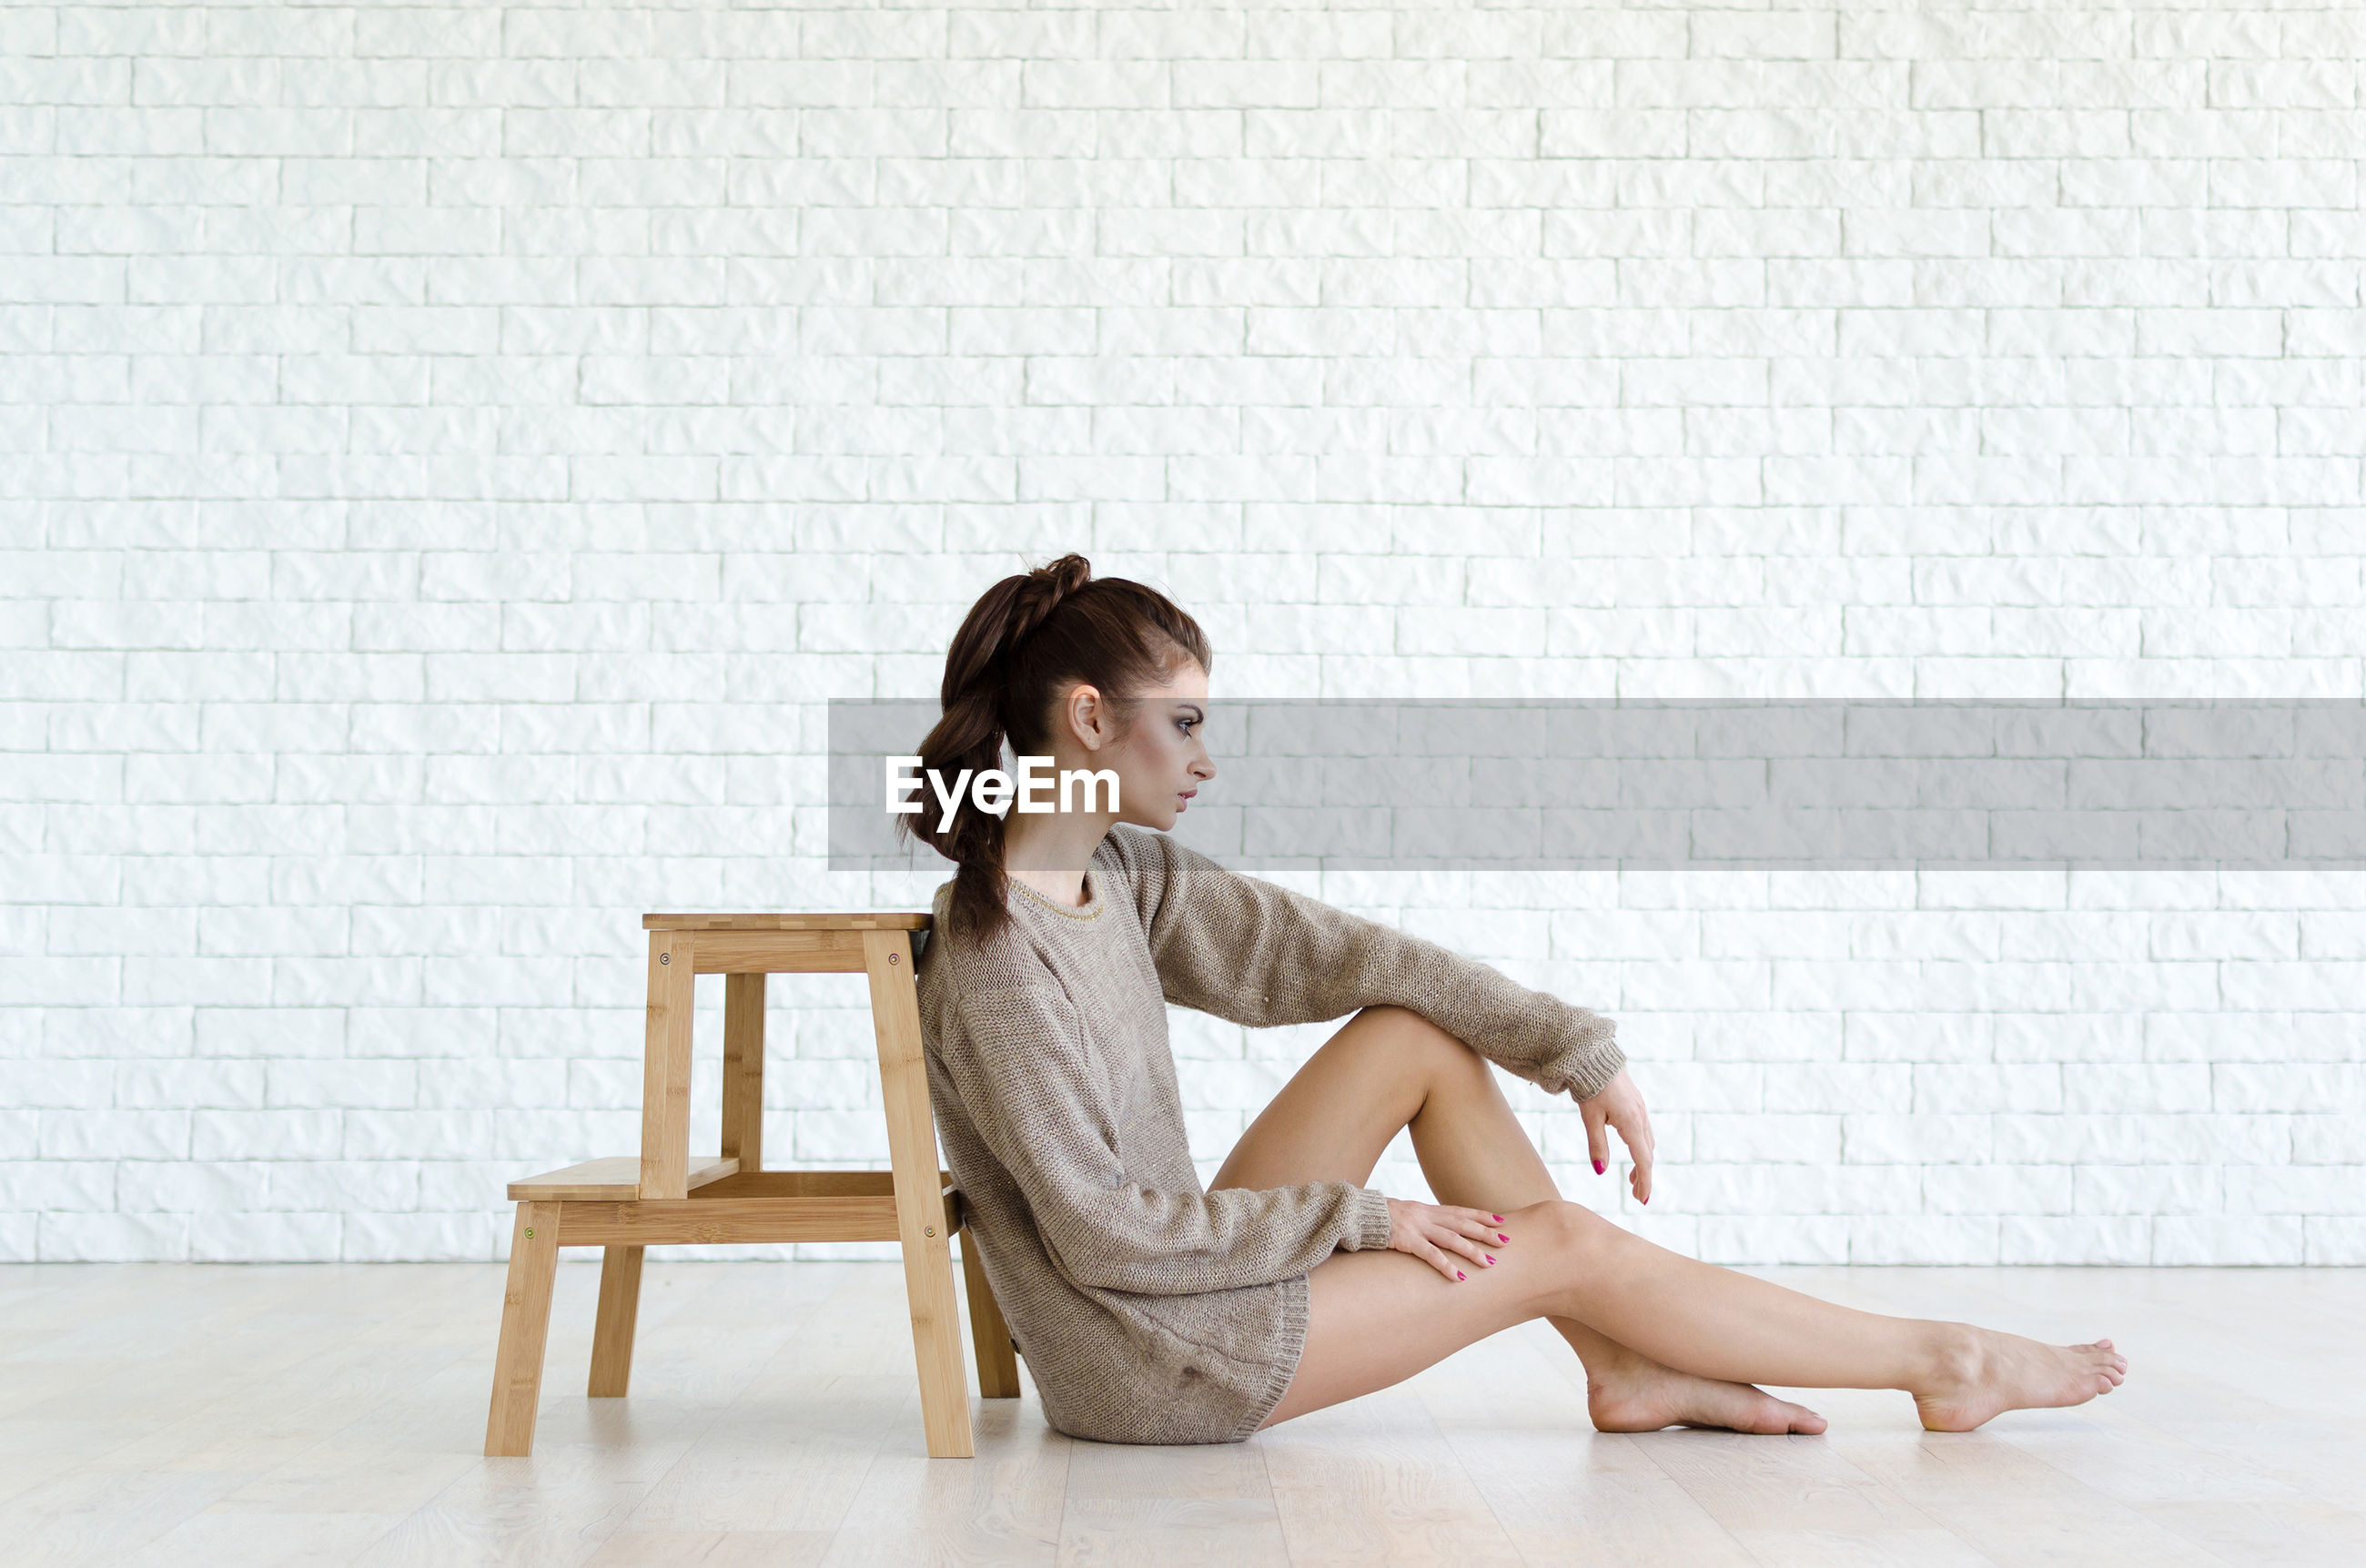 Full length of young woman sitting by wood stool against brick wall